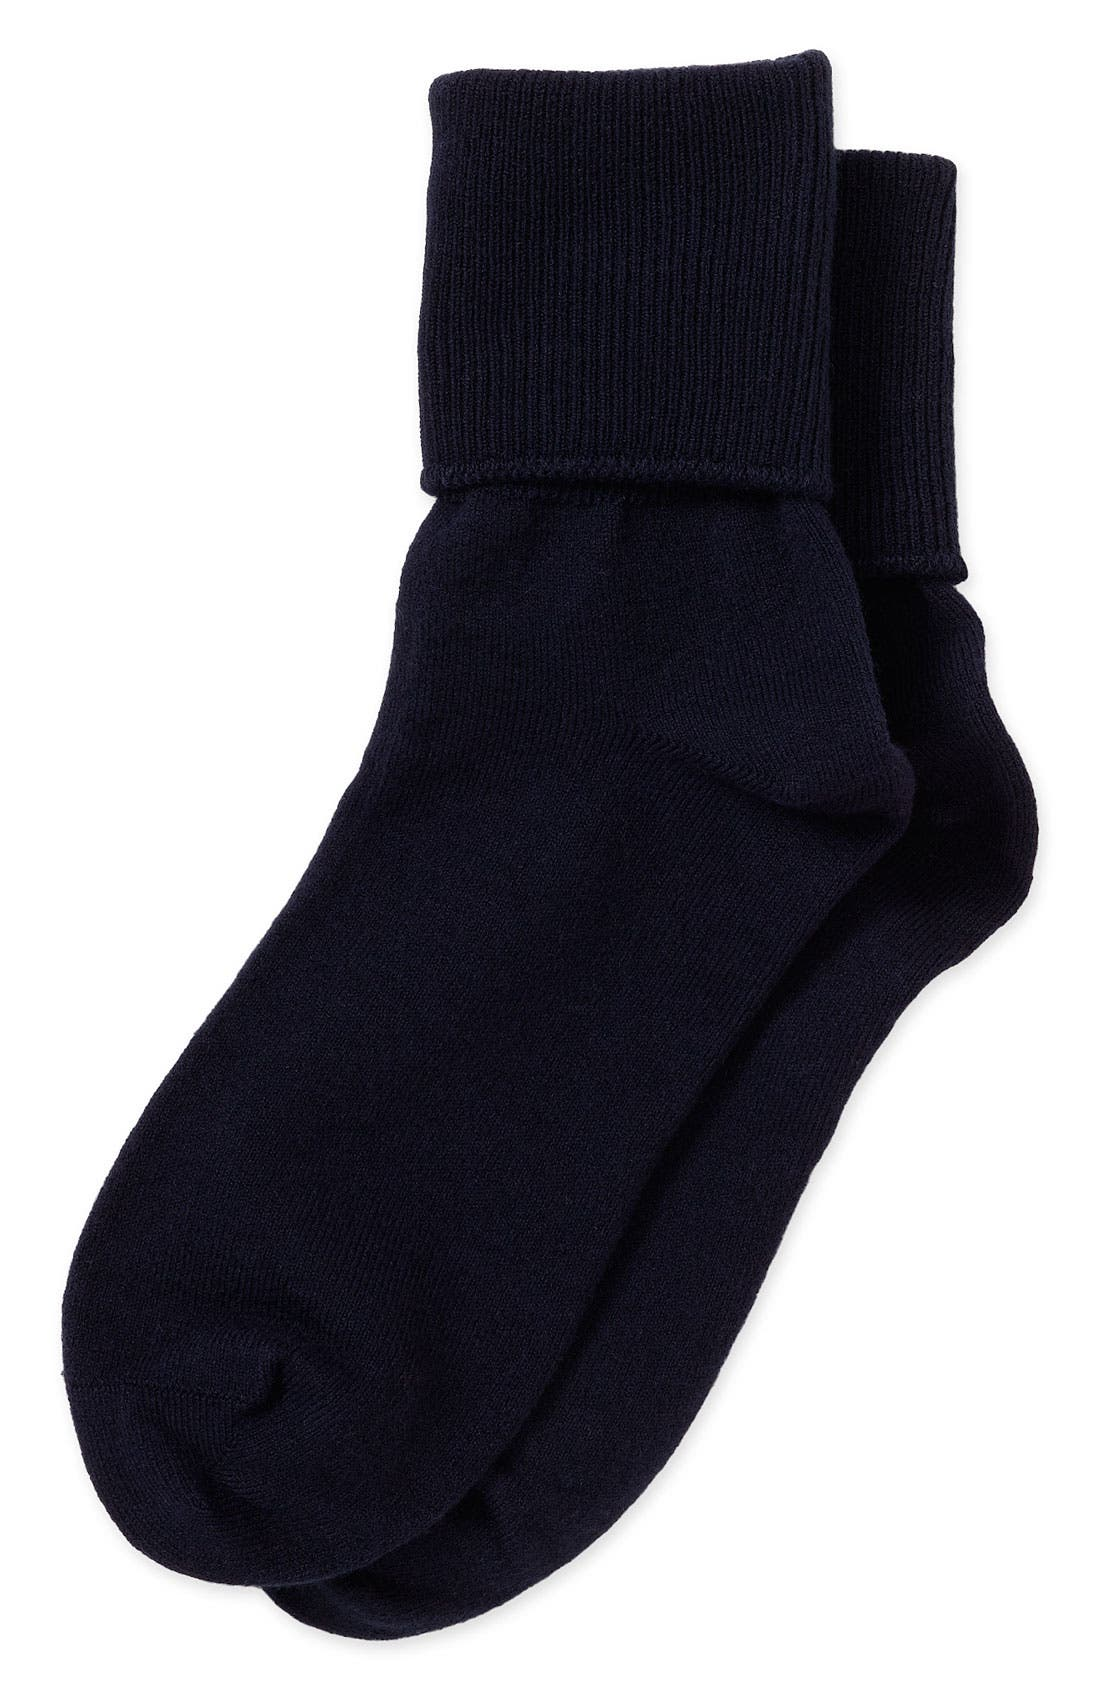 Main Image - Nordstrom Cotton Blend Socks with Turn Cuffs (Baby Girls, Toddler Girls, Little Girls & Big Girls)